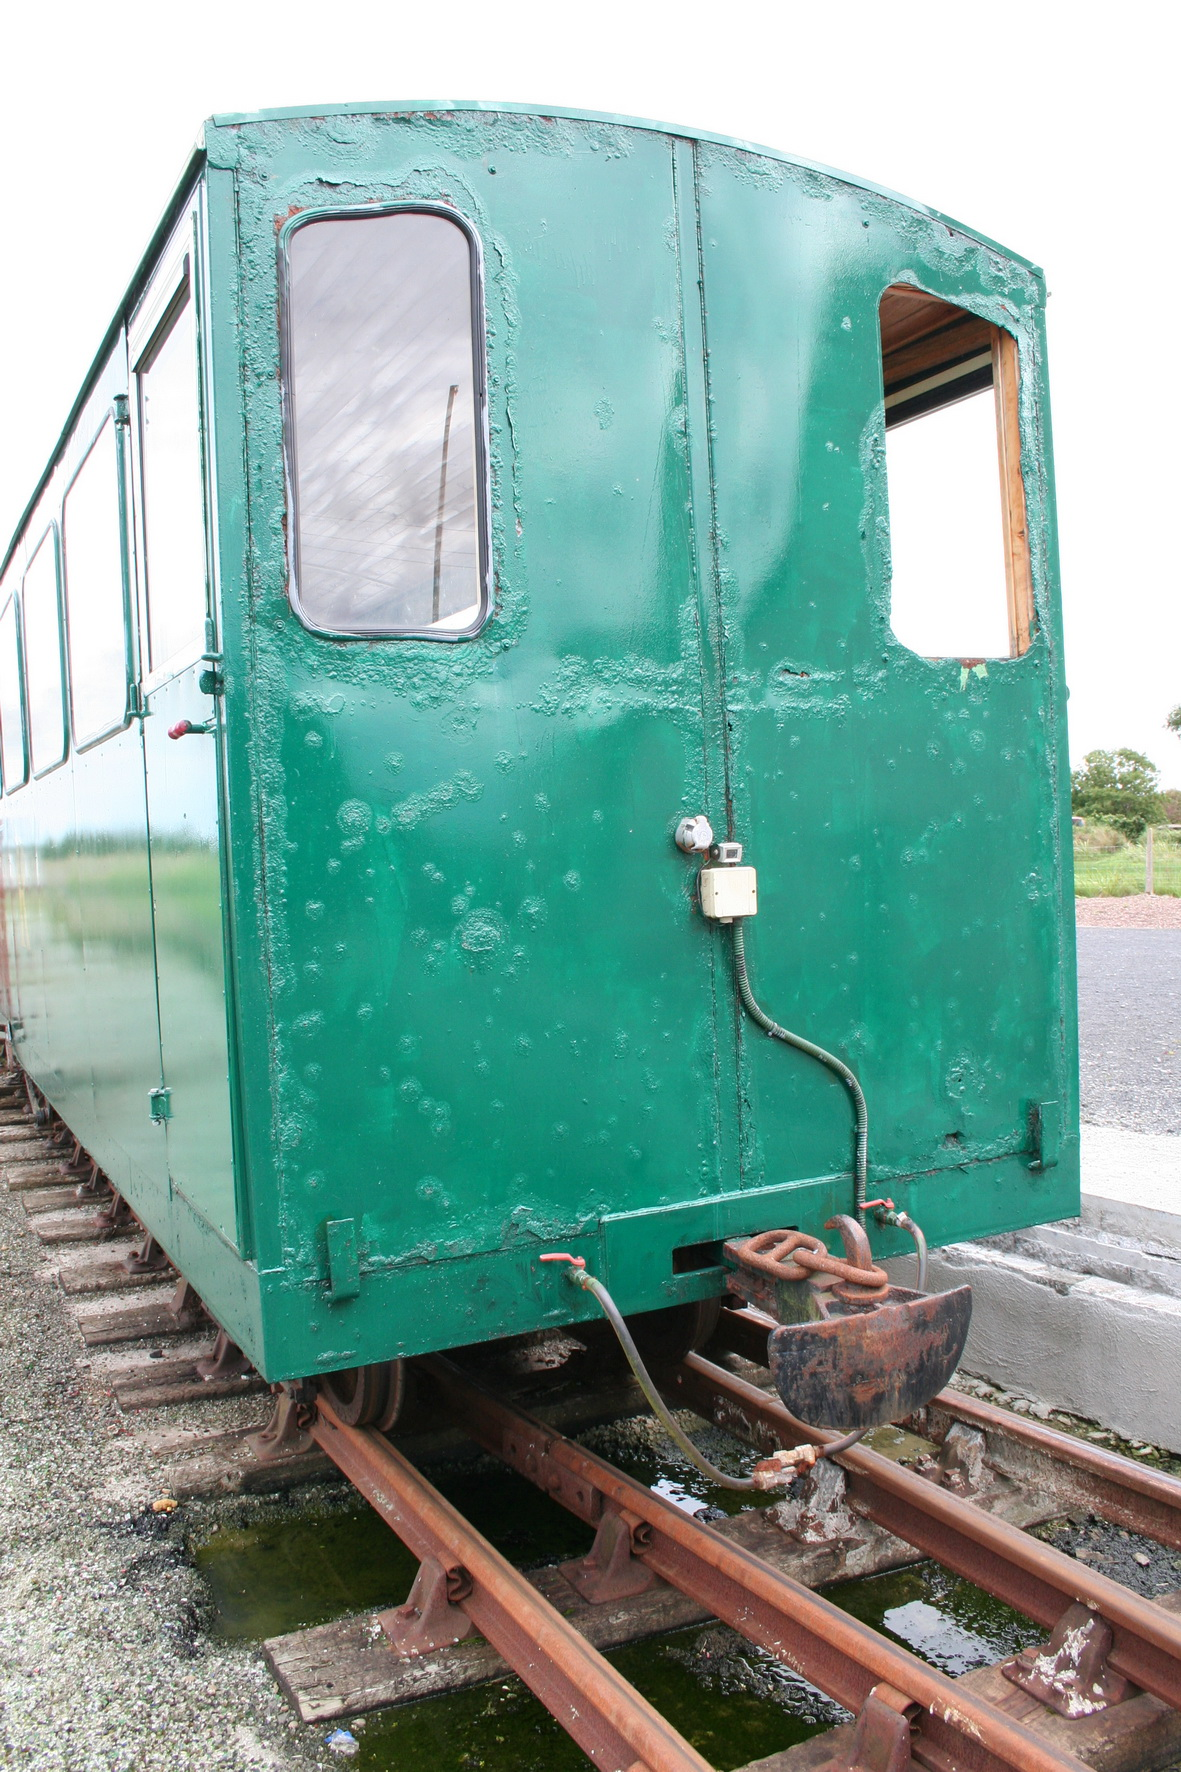 Stern fender on the rear carriage